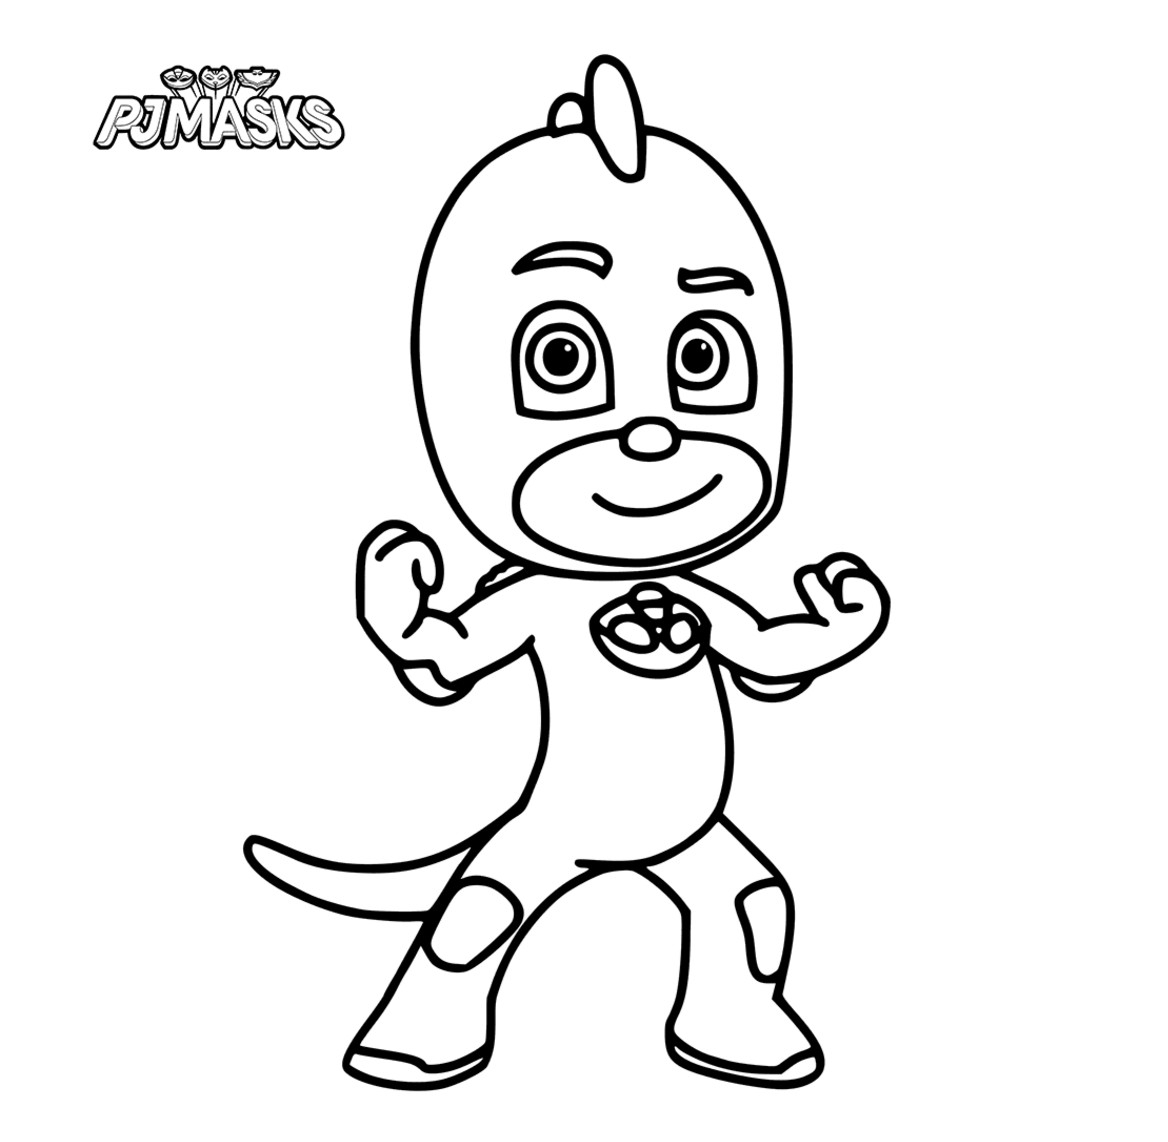 1168x1142 Pj Masks Coloring Pages Free Printable Coloring For Kids